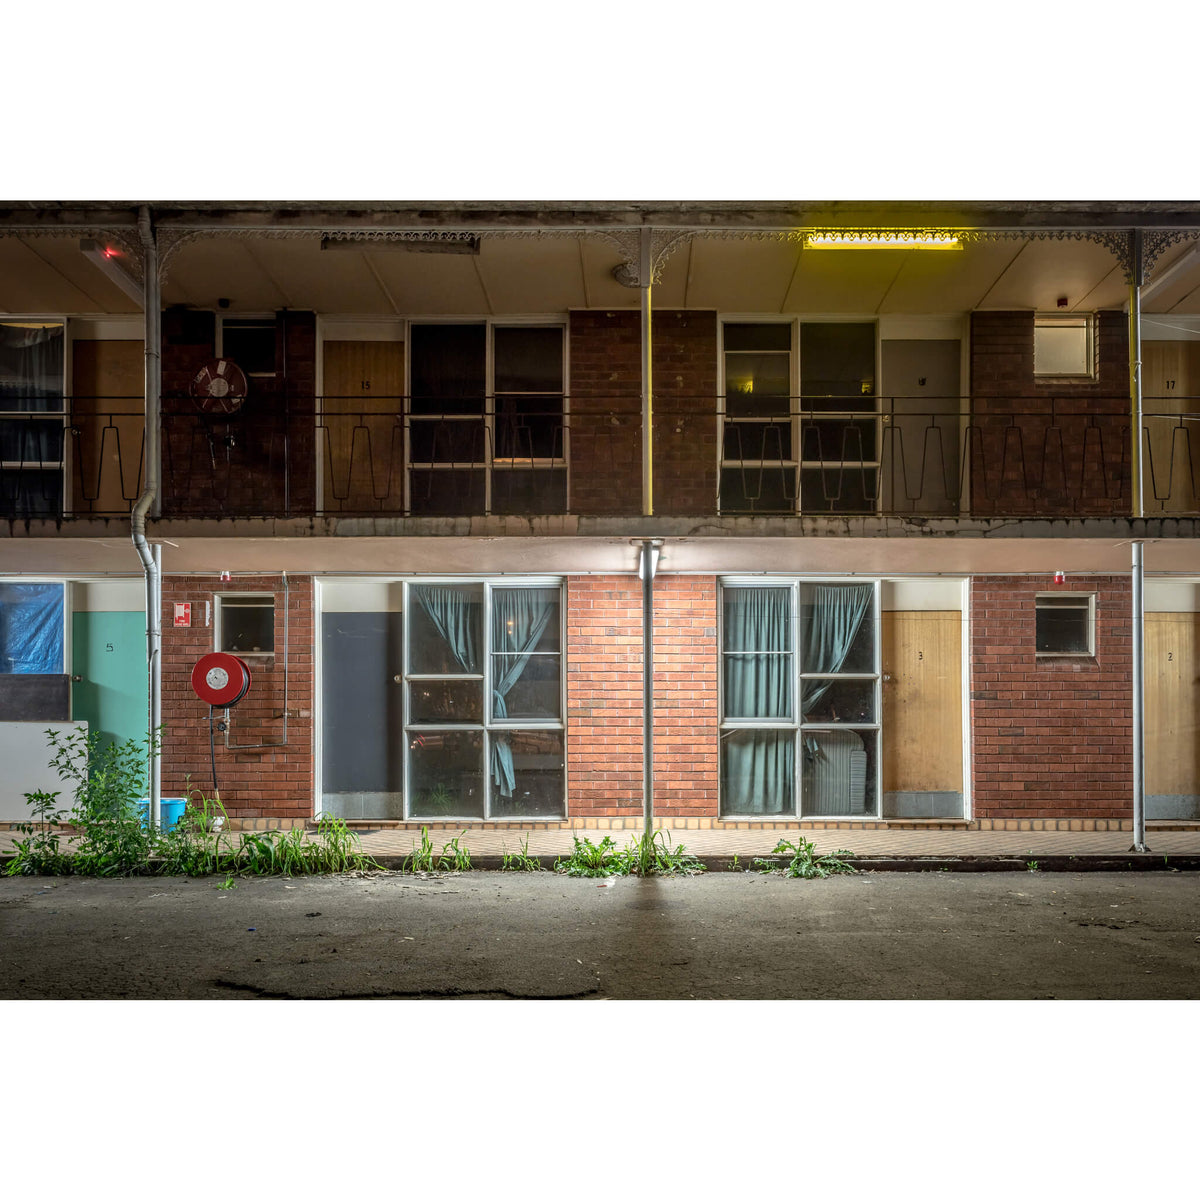 Grandstand Motel, Warwick Farm | Hotel Motel 101 Fine Art Print - Lost Collective Shop